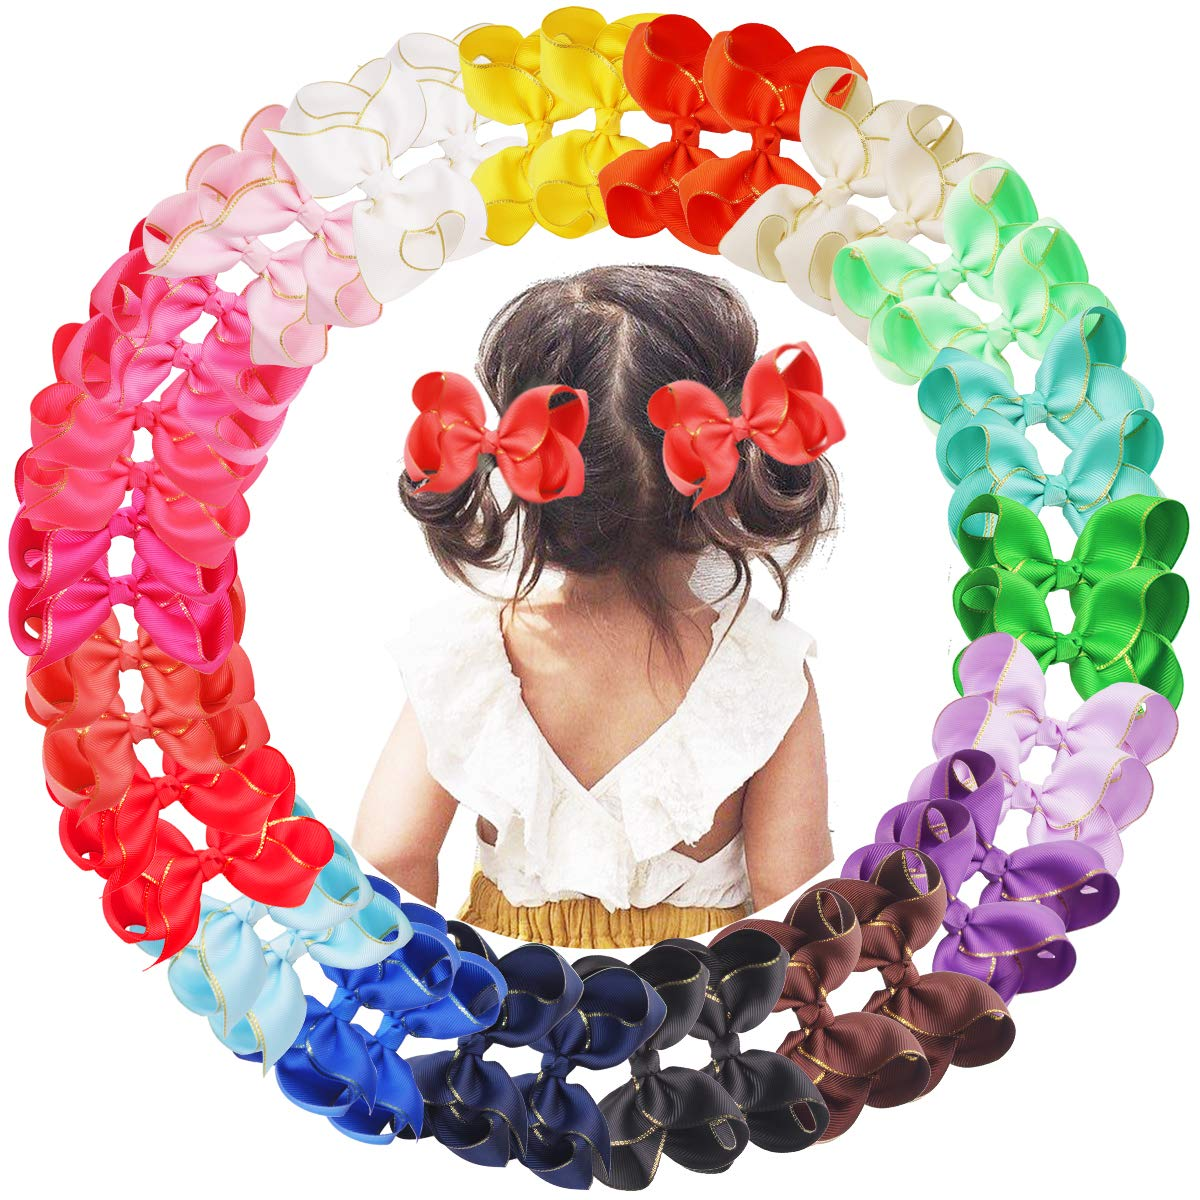 40PCS Baby Girls Hair Bow Clips Gold Edge Grosgrain Ribbon 4.5 Inch Hair Bows Alligator Hair Clips Hair Accessories for Girls Toddlers Kids Children in Pairs